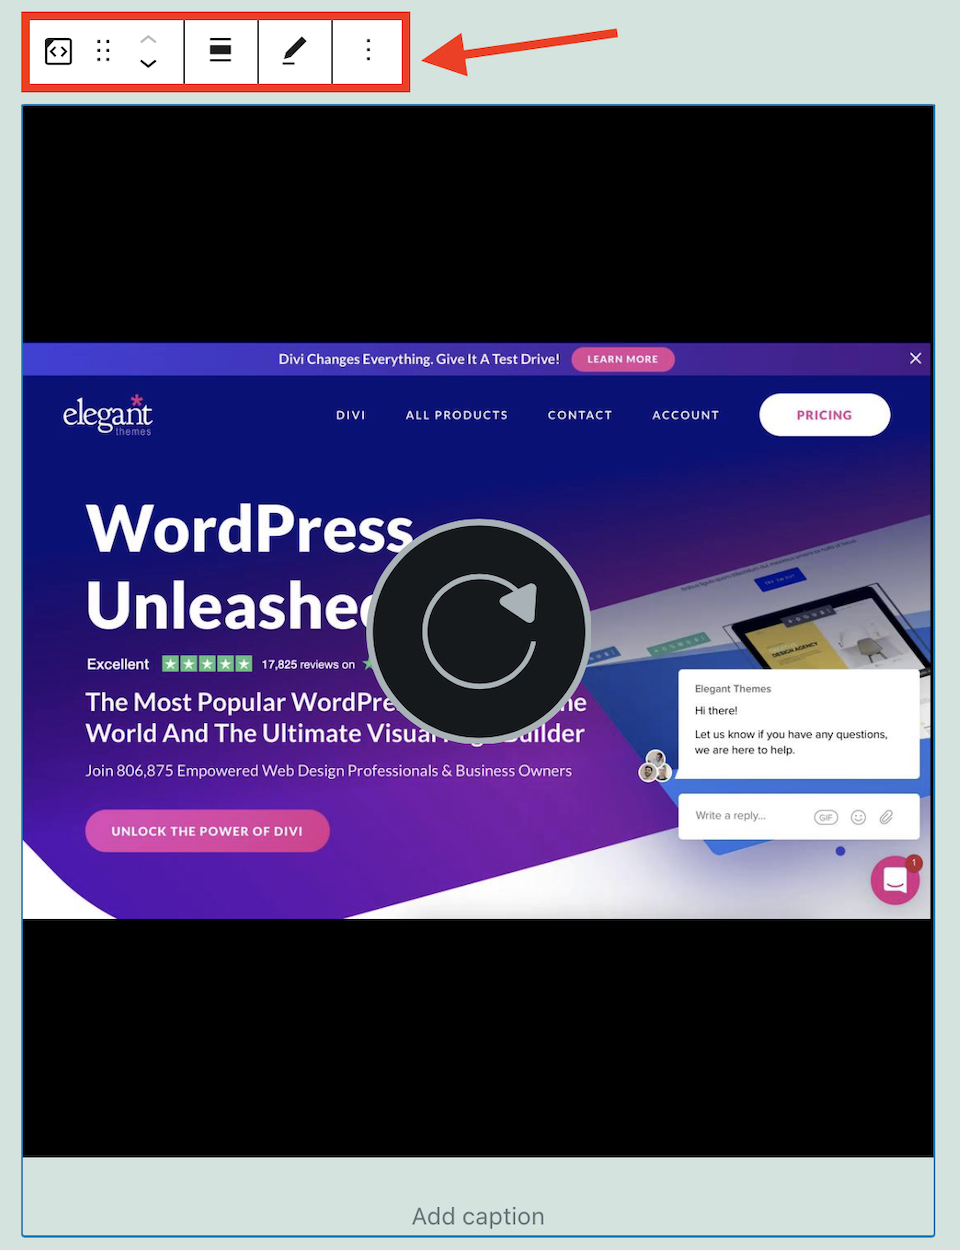 how-to-use-the-wordpress-screencast-embed-block-7 How to Use the WordPress Screencast Embed Block